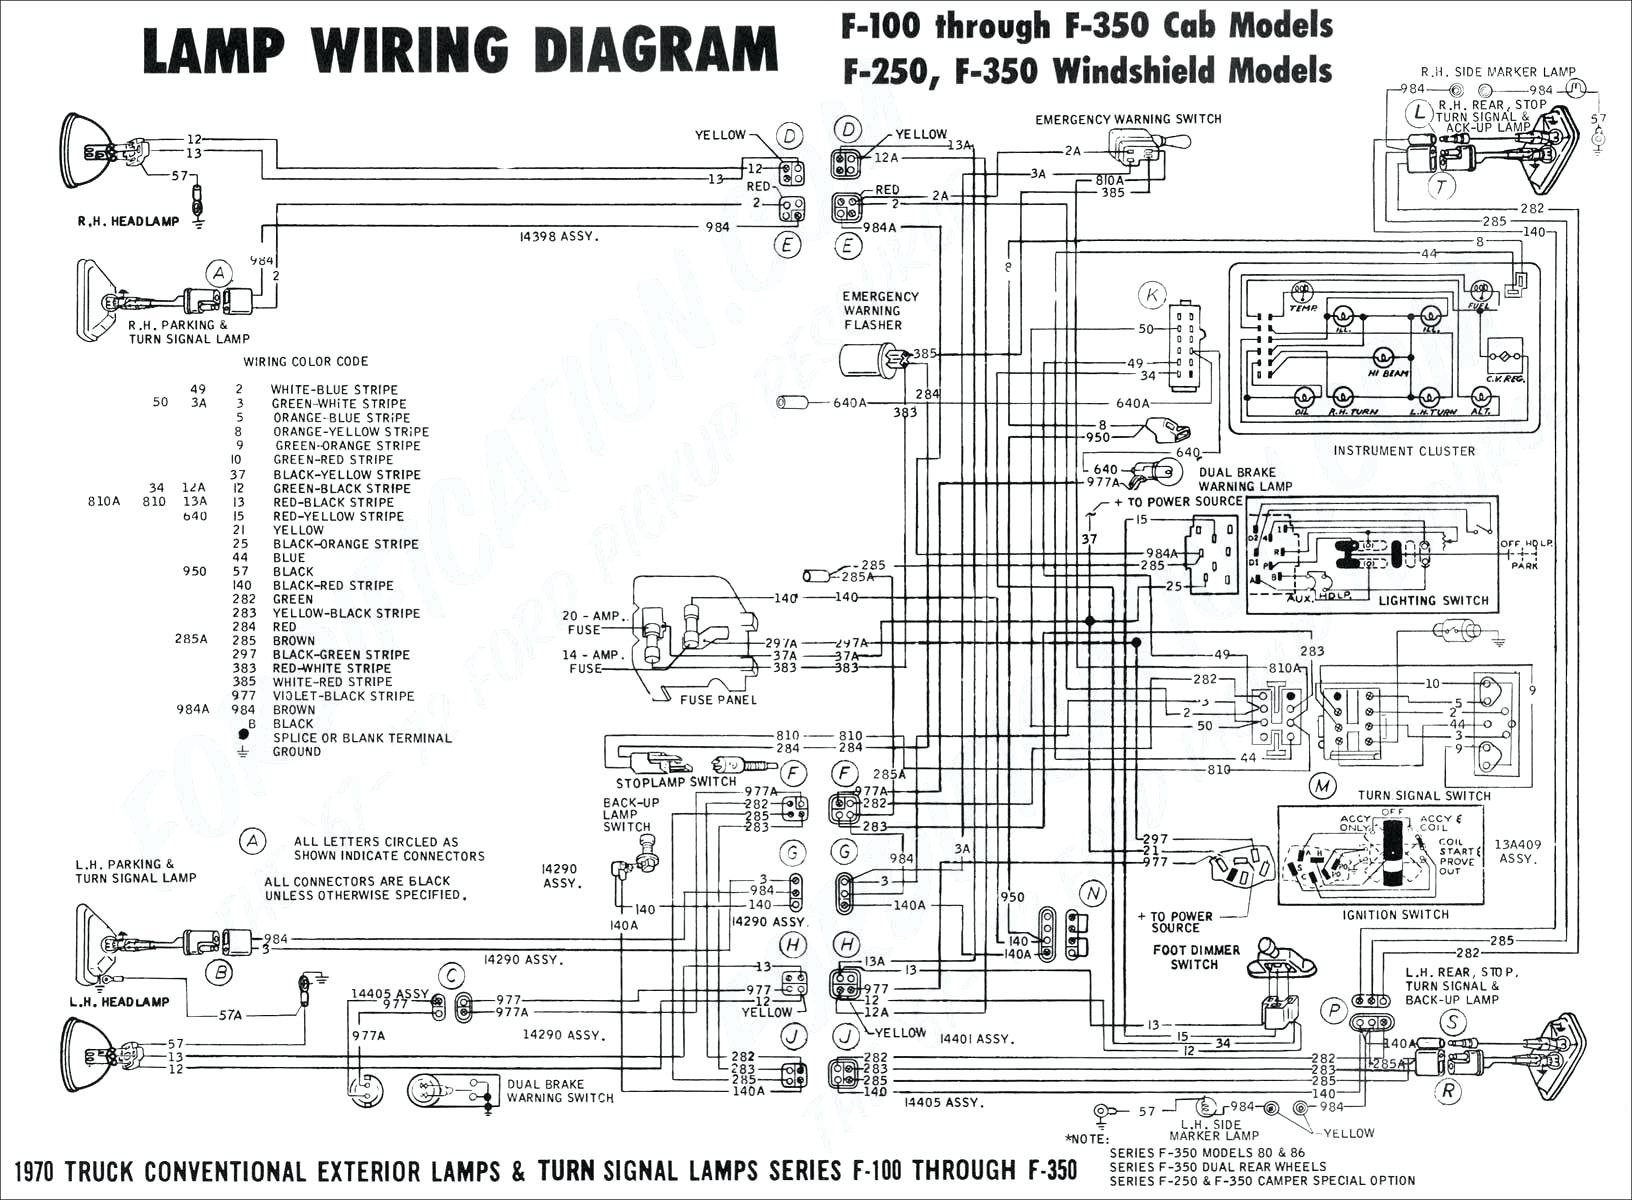 2006 f250 wiring diagram wiring schematic diagram 35 skematic co Ford Truck Wiring Diagrams